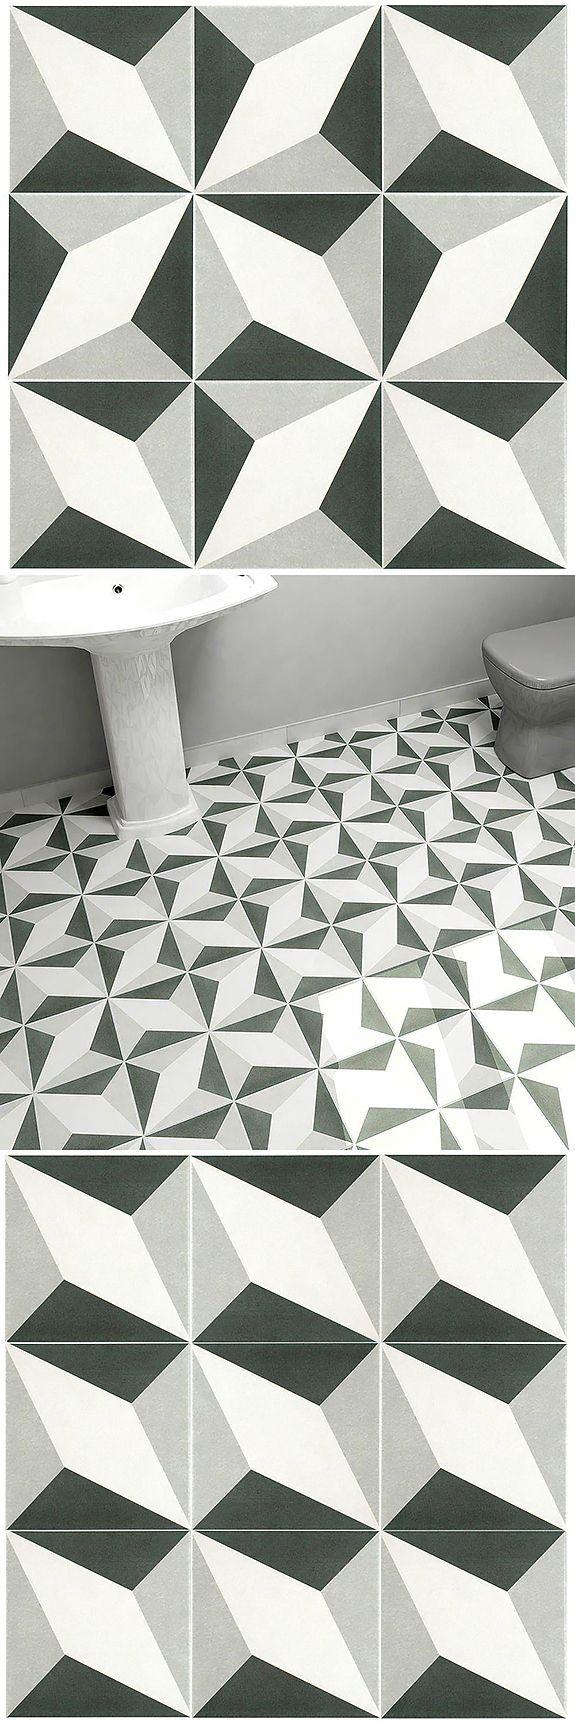 210 best inspiring tile images on pinterest mosaic bathroom ideas merola tile twenties diamond 7 34 in x 7 34 in ceramic floor and wall tile dailygadgetfo Gallery